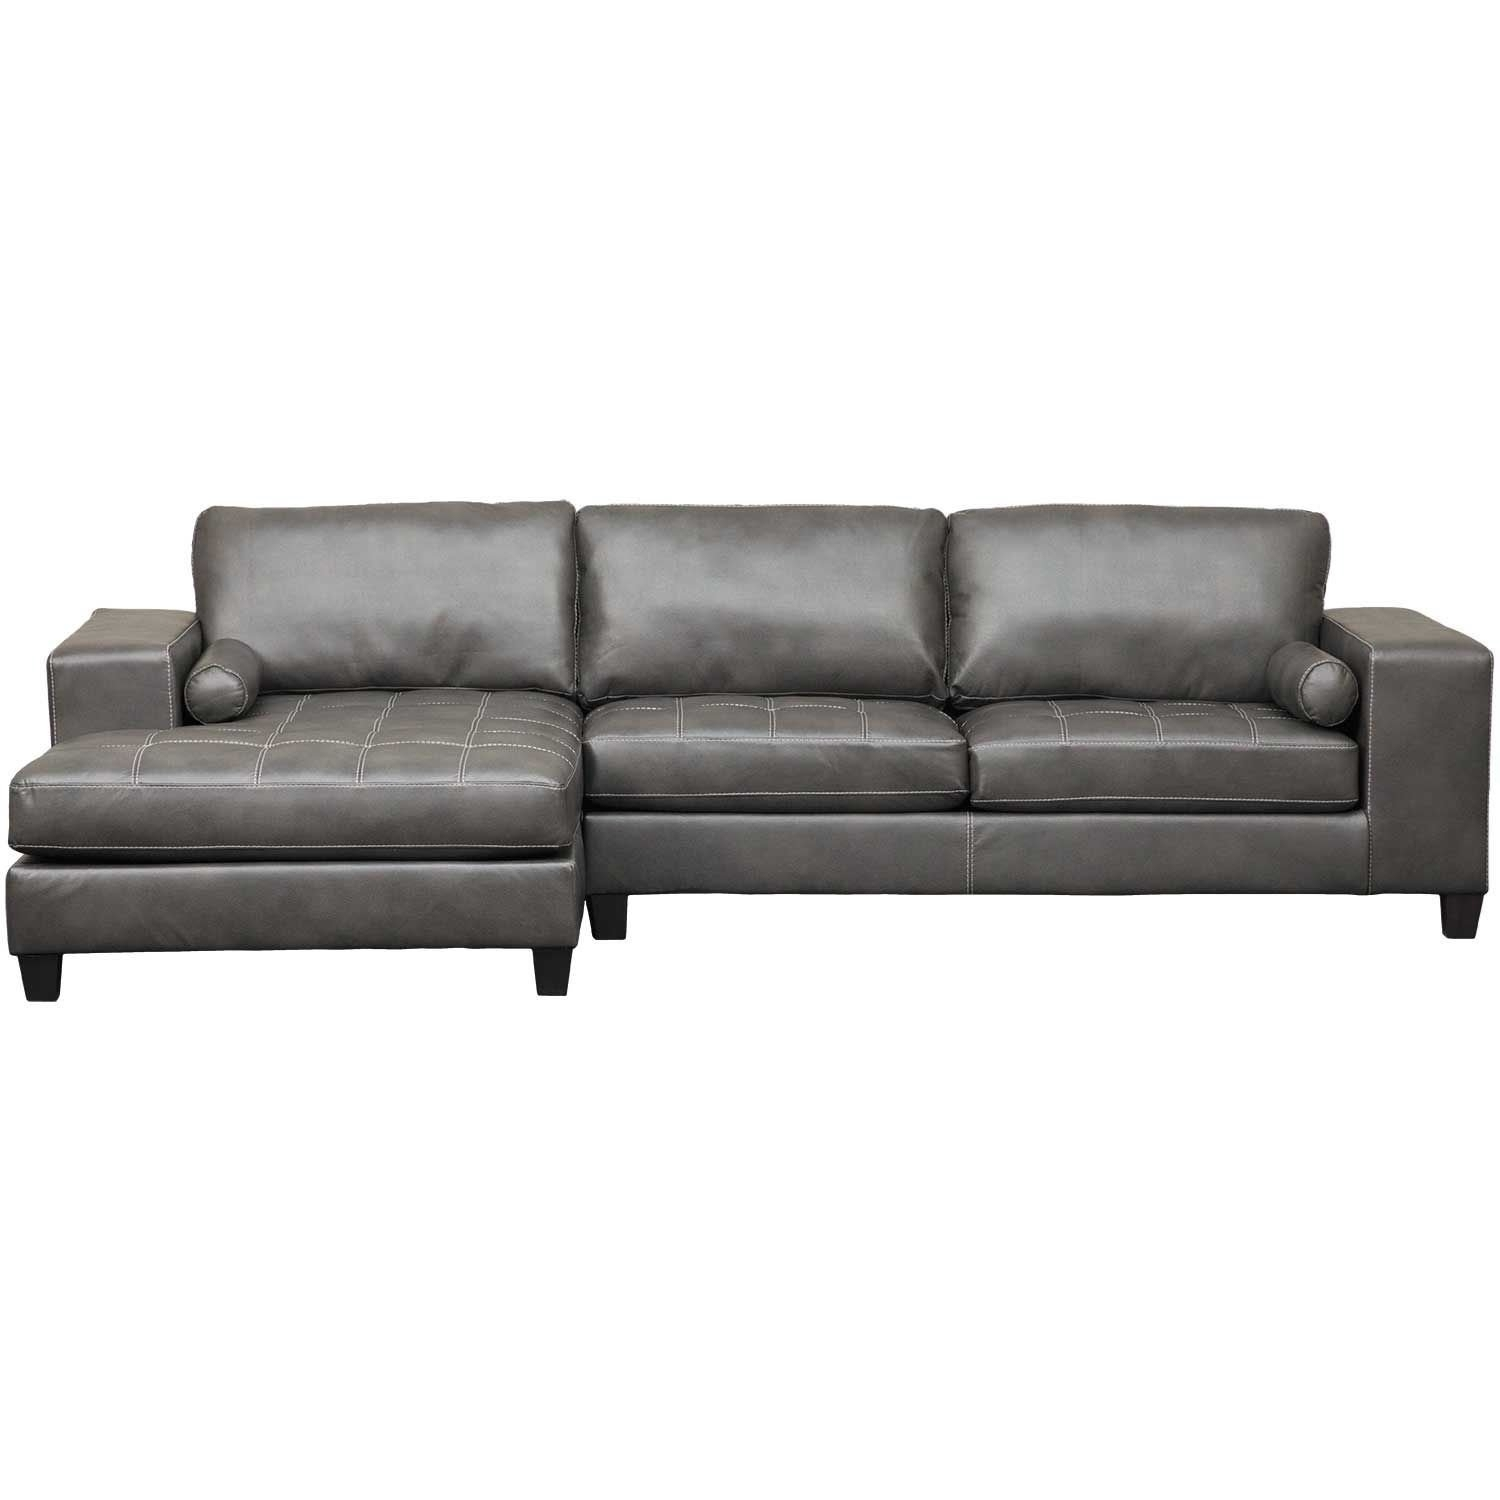 Nokomis 2 Piece Sectional With Laf Chaise | 8770116/8770167 | Ashley With Regard To Cosmos Grey 2 Piece Sectionals With Laf Chaise (Image 17 of 25)